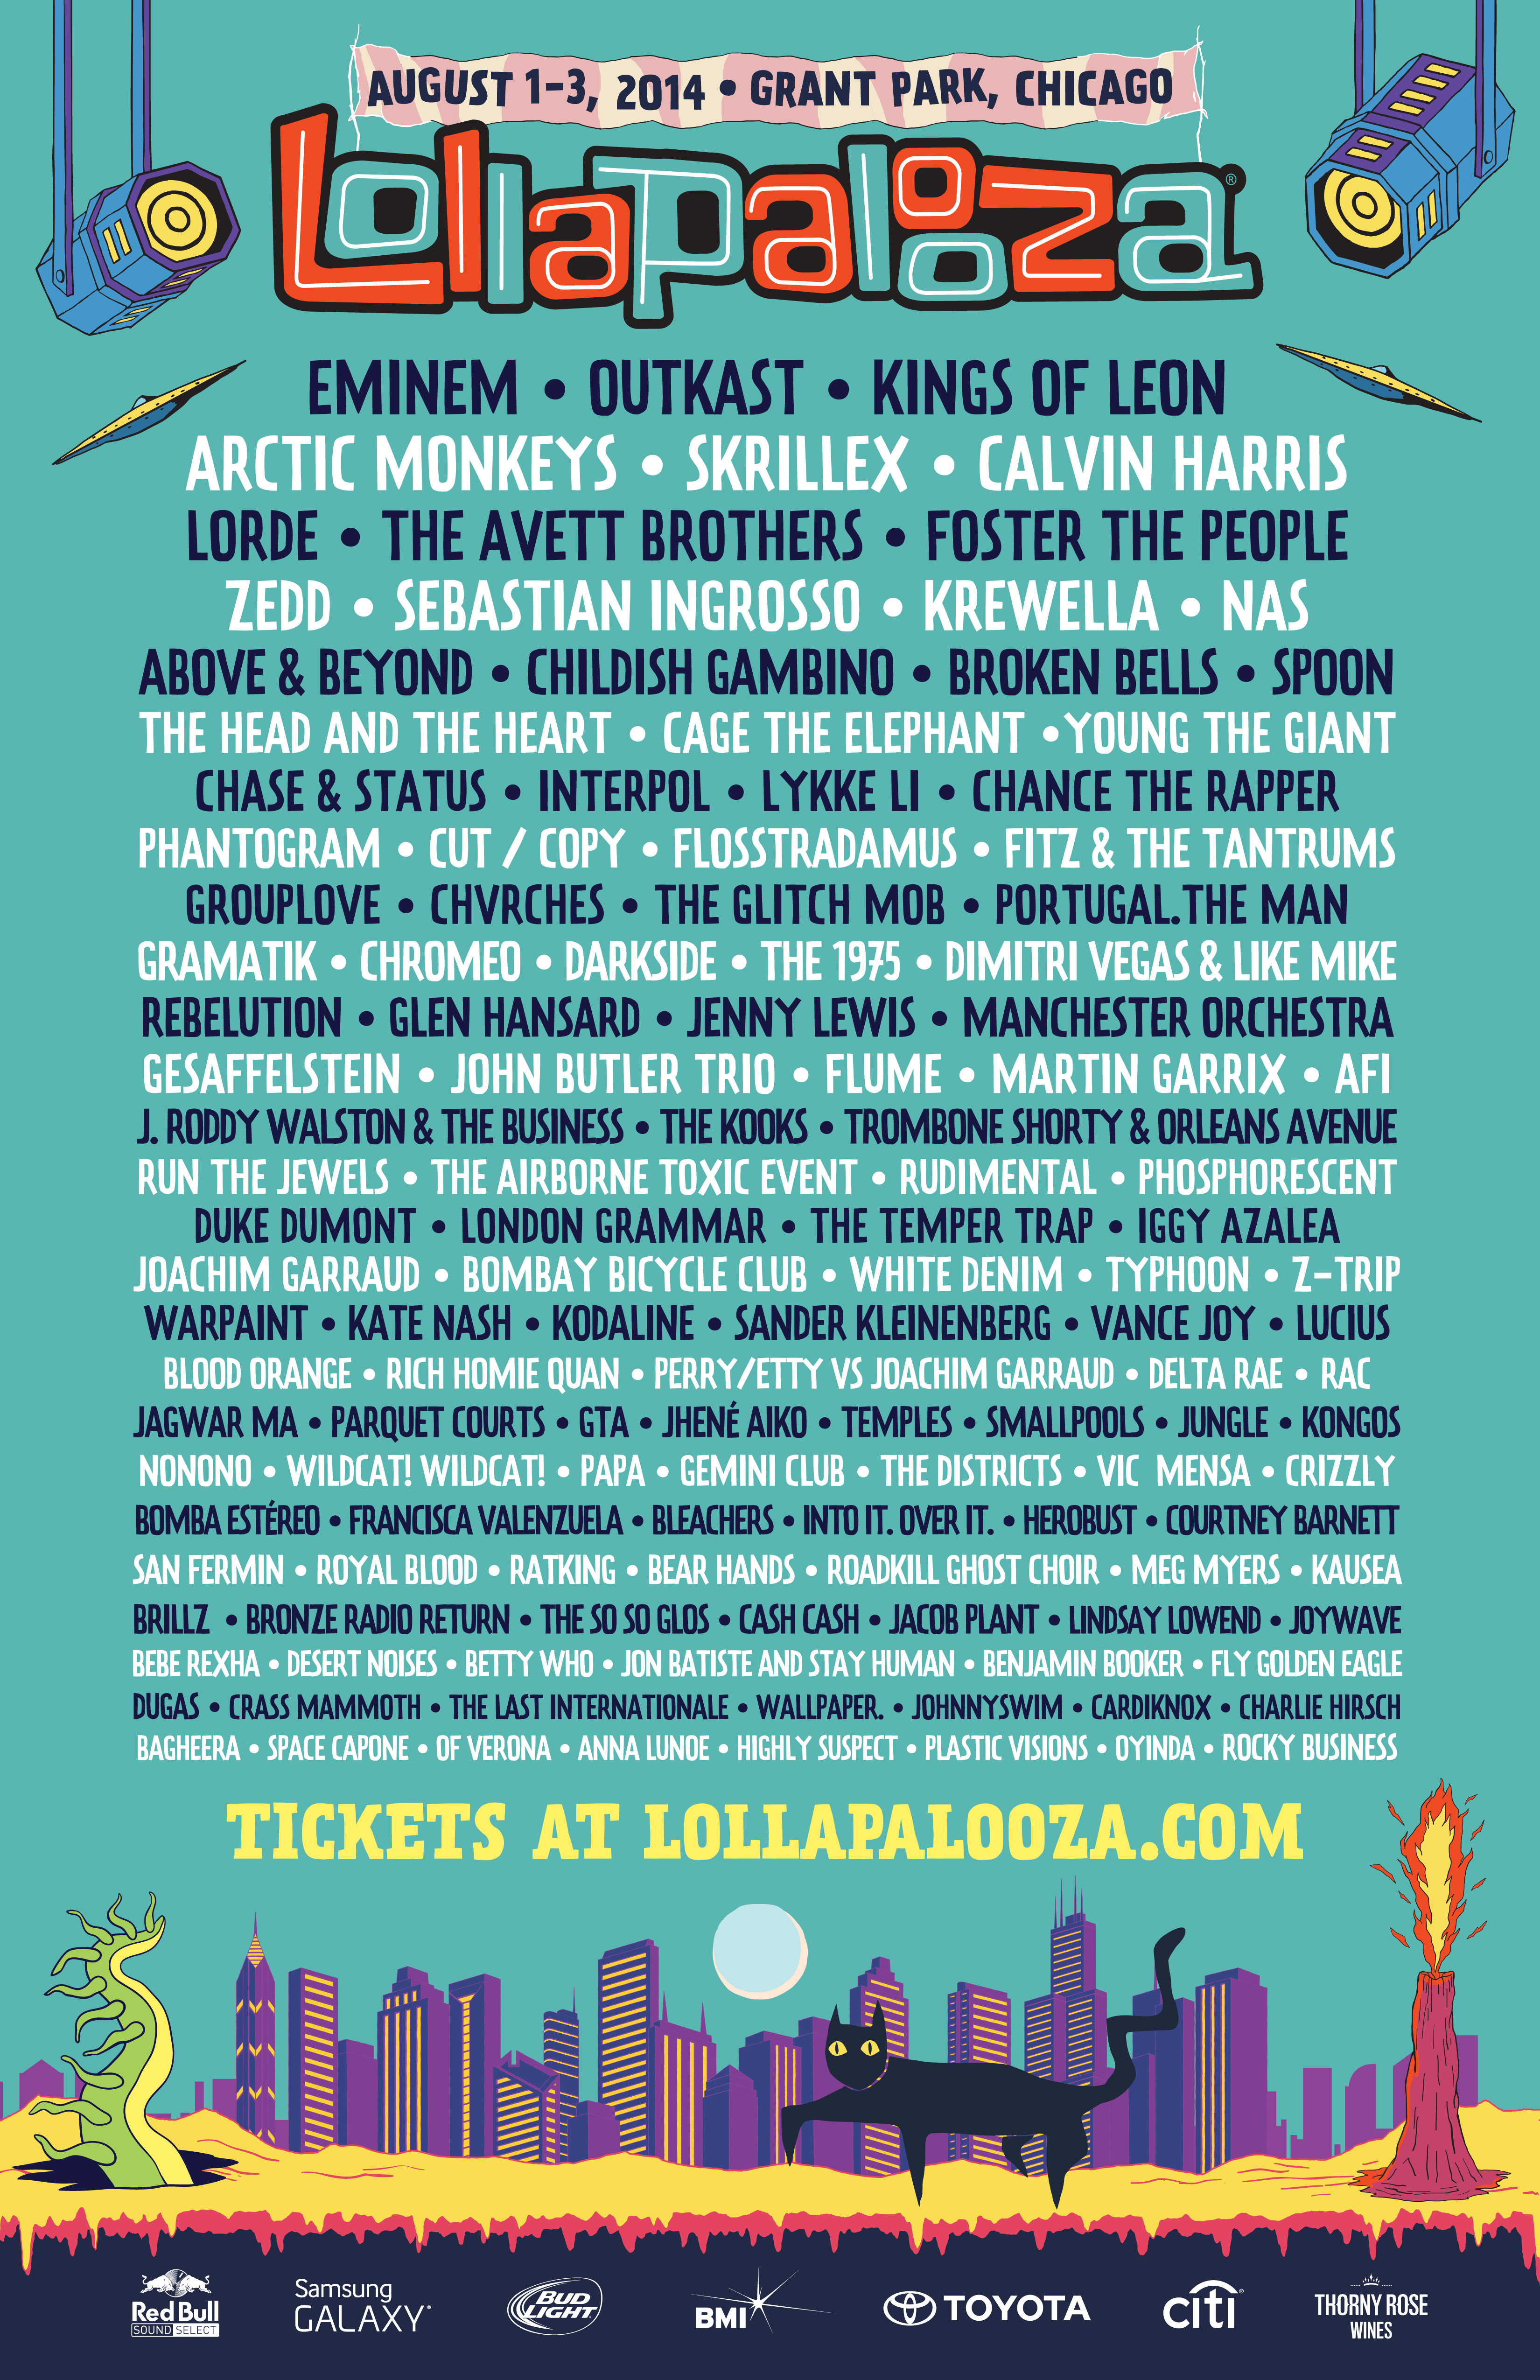 Lollapalooza lineup 2014 stereogum for Jardin stereo 2015 line up